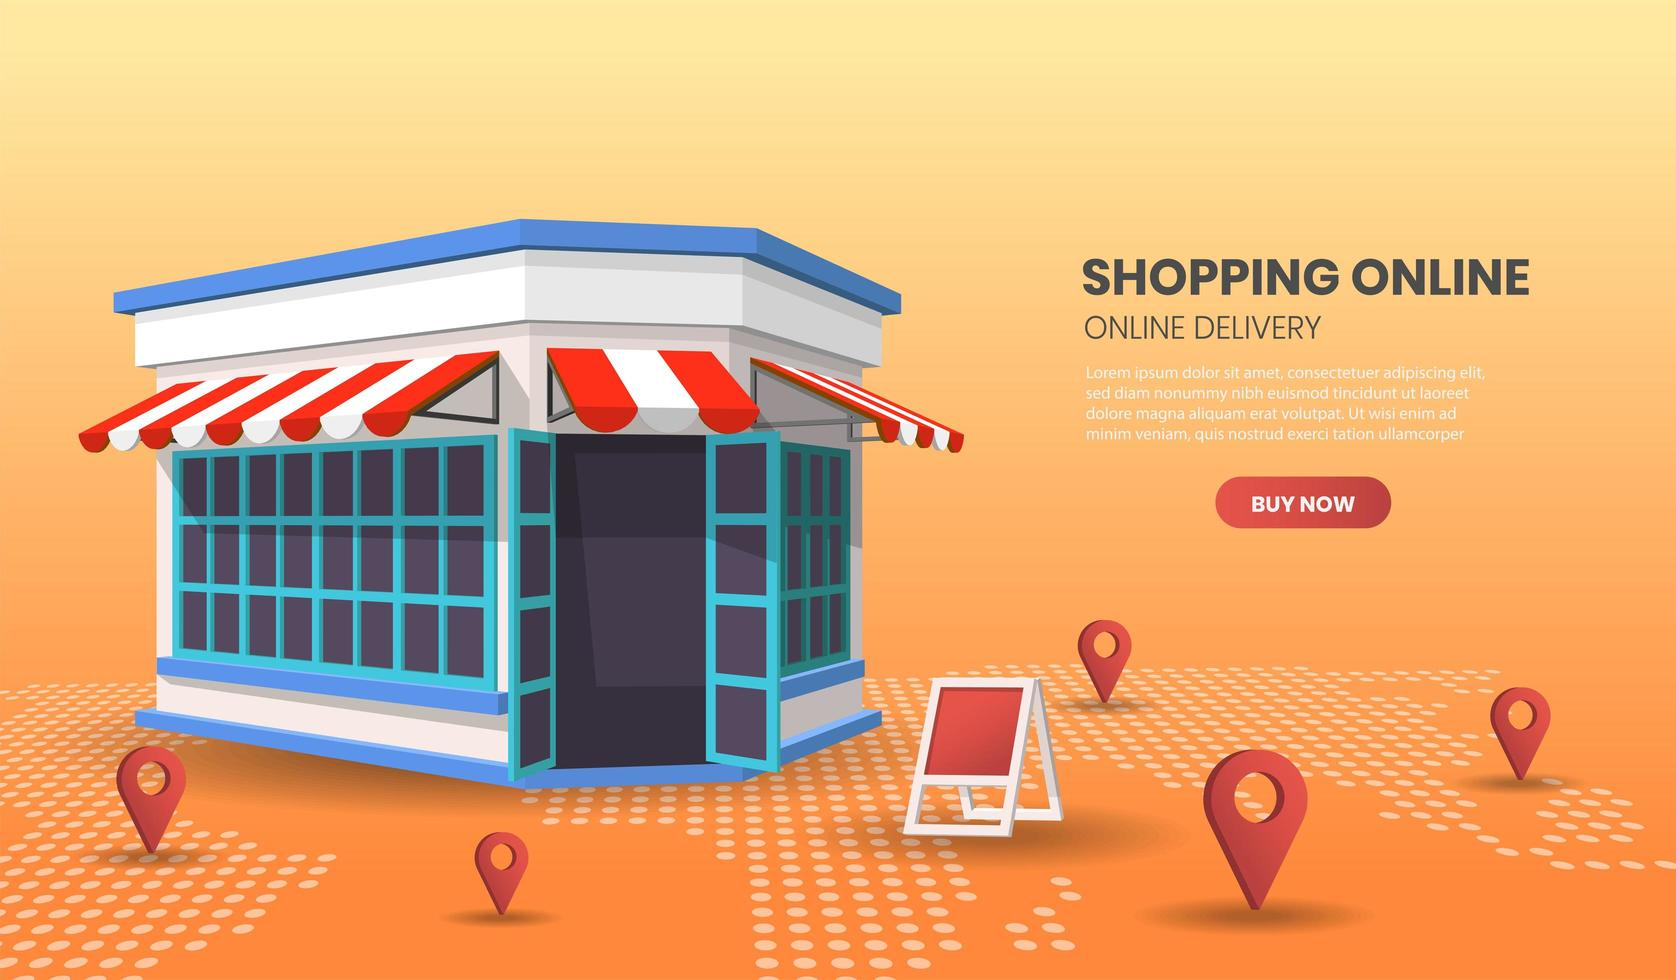 Shopping Online Concept with Retail Store - Download Free Vectors, Clipart  Graphics & Vector Art